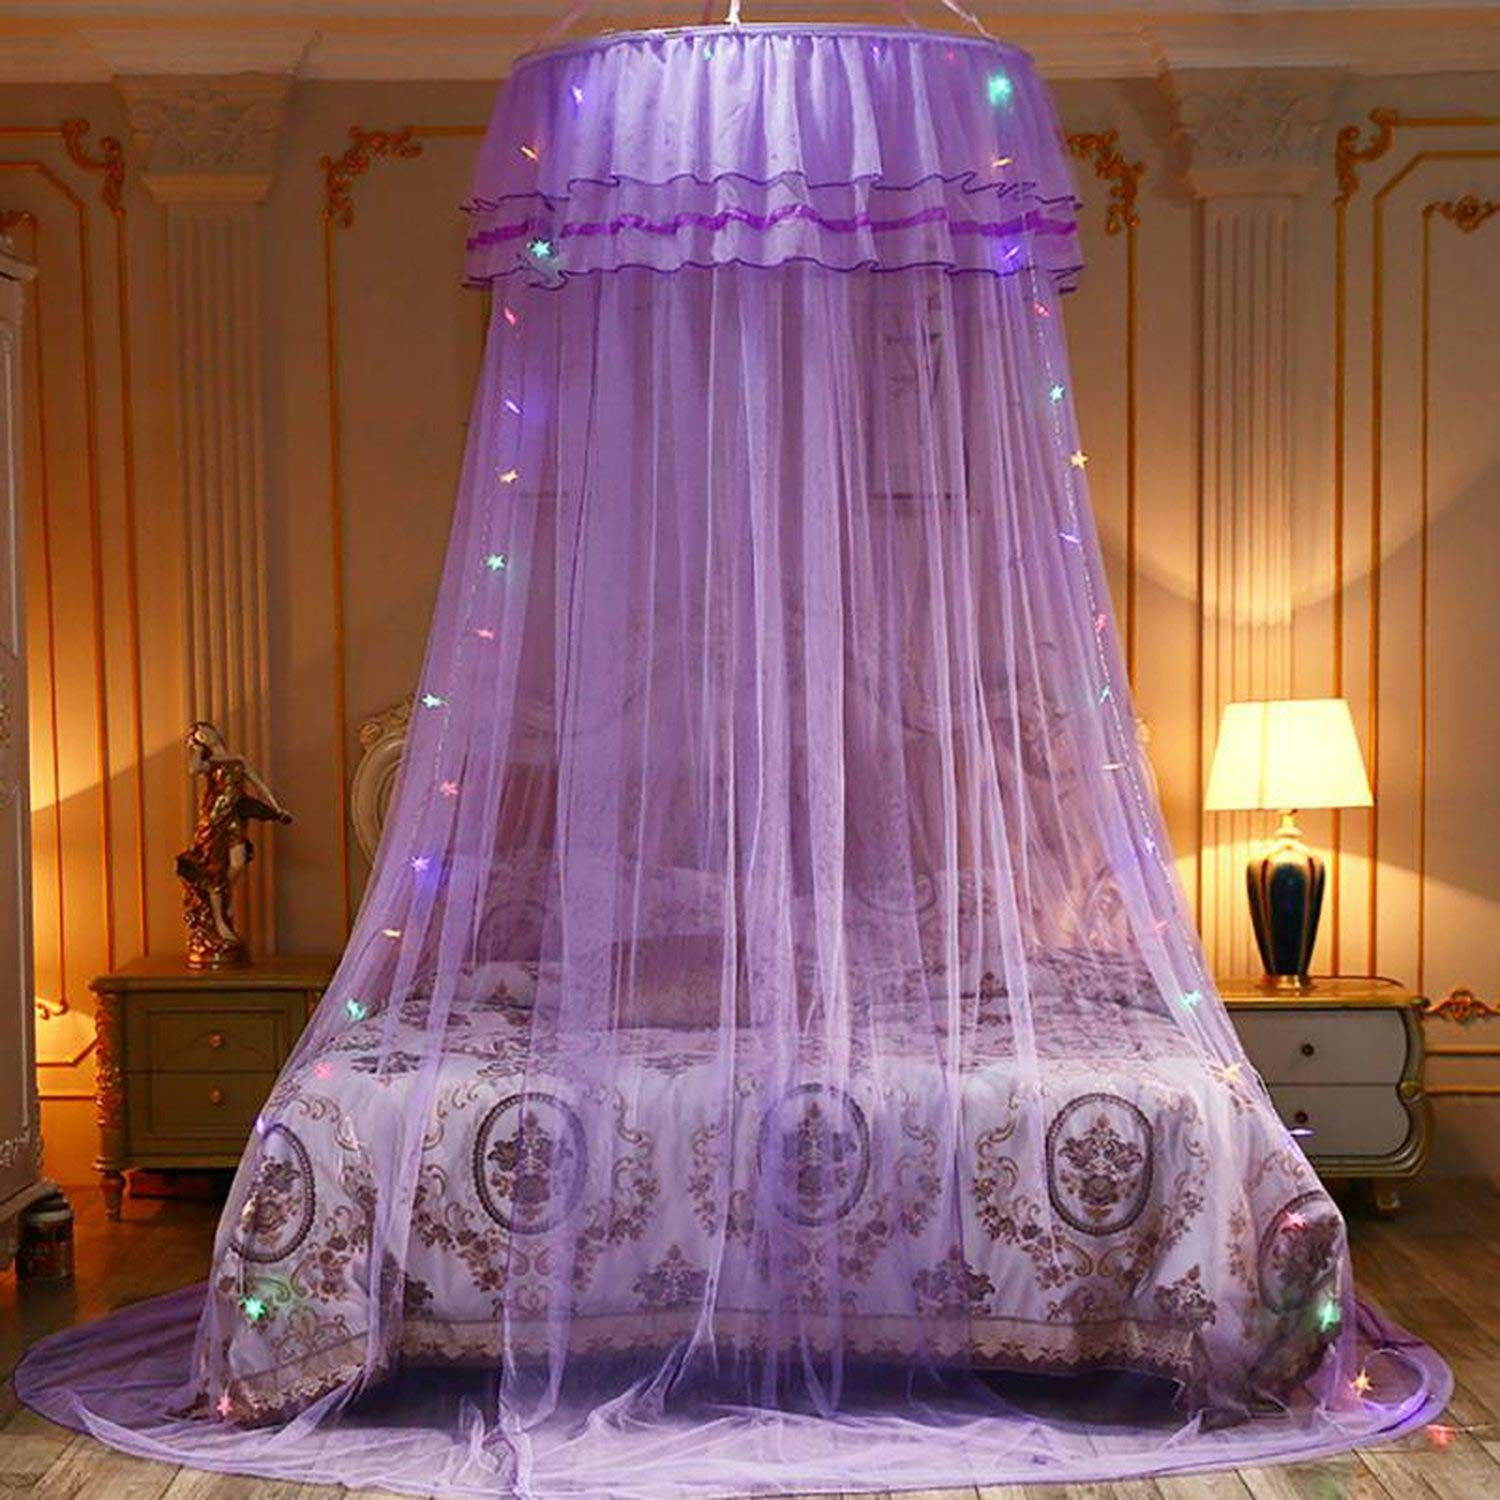 Elegant Canopy Mosquito Net for Double Bed Mosquito Repellent Tent Insect Reject Canopy Bed Curtain Bed Tent,3 by Try My Best Mosquito Net (Image #4)